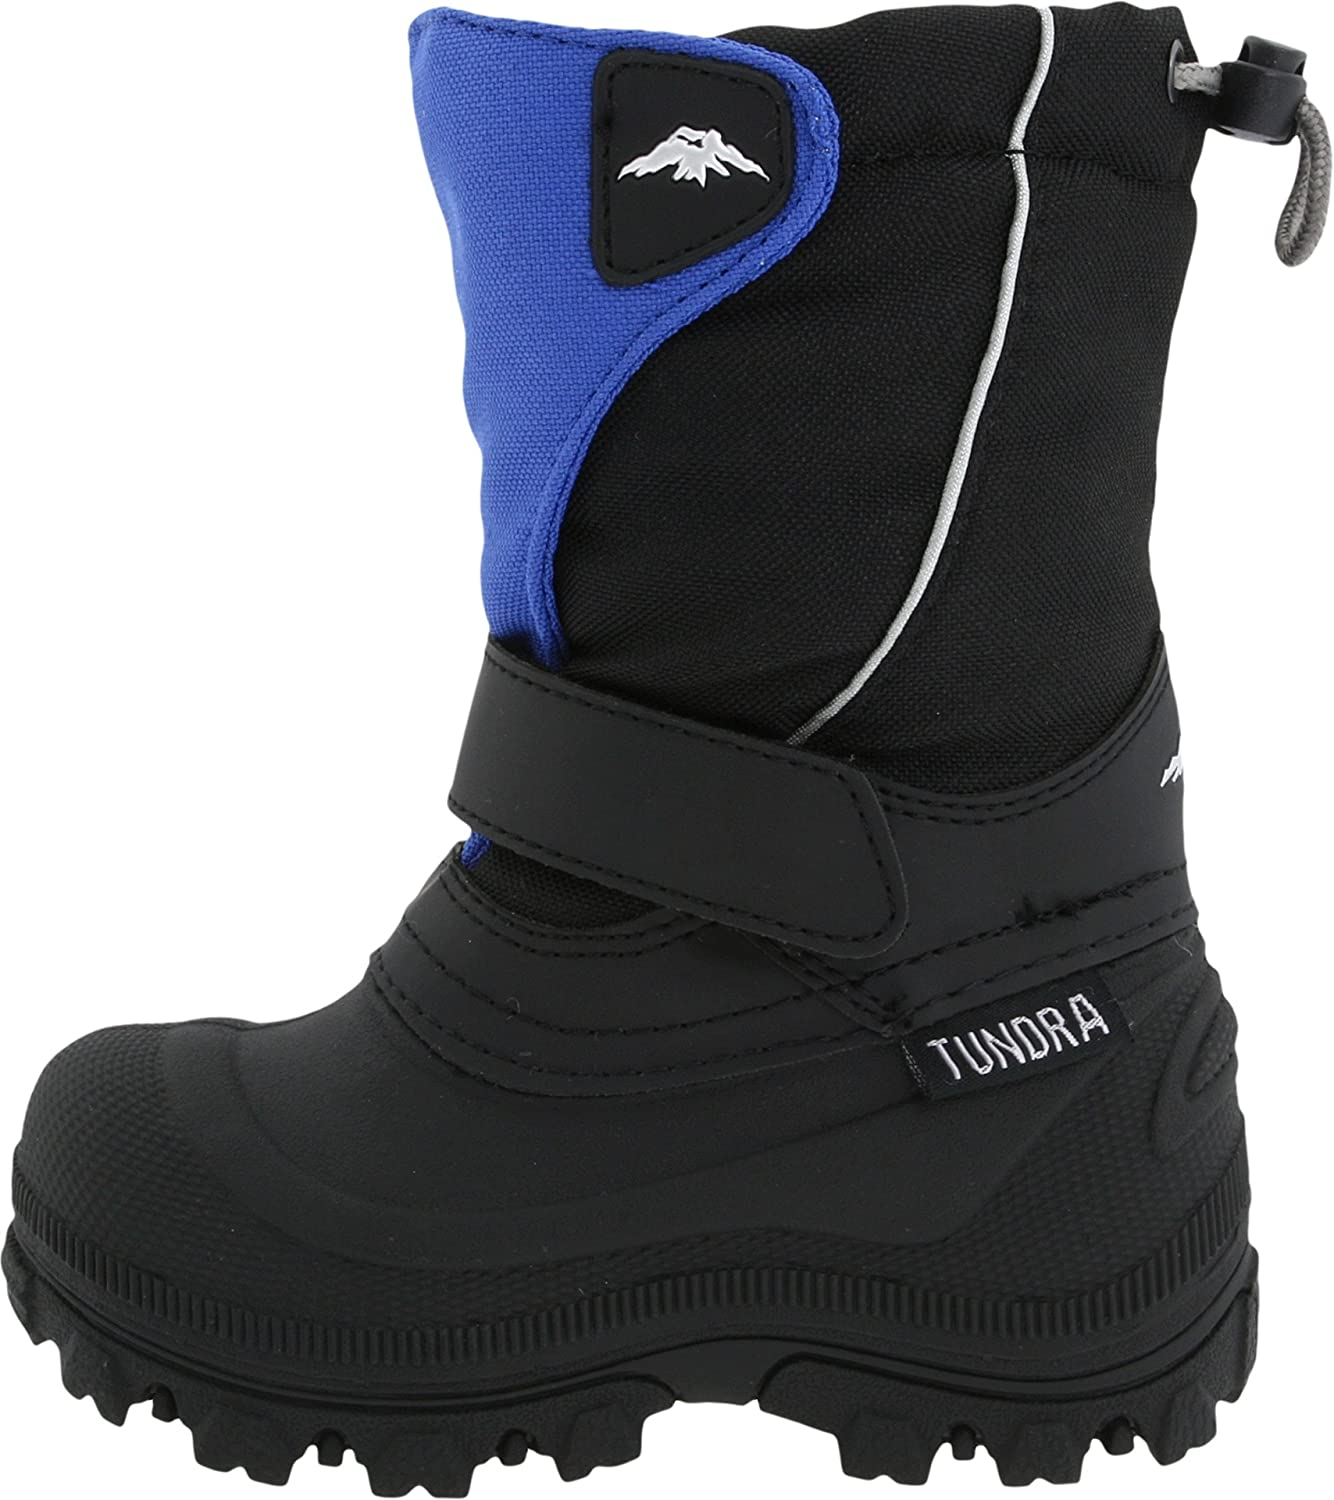 Tundra Quebec Child Winter Boots Black//Grey 1 M US Little Kid